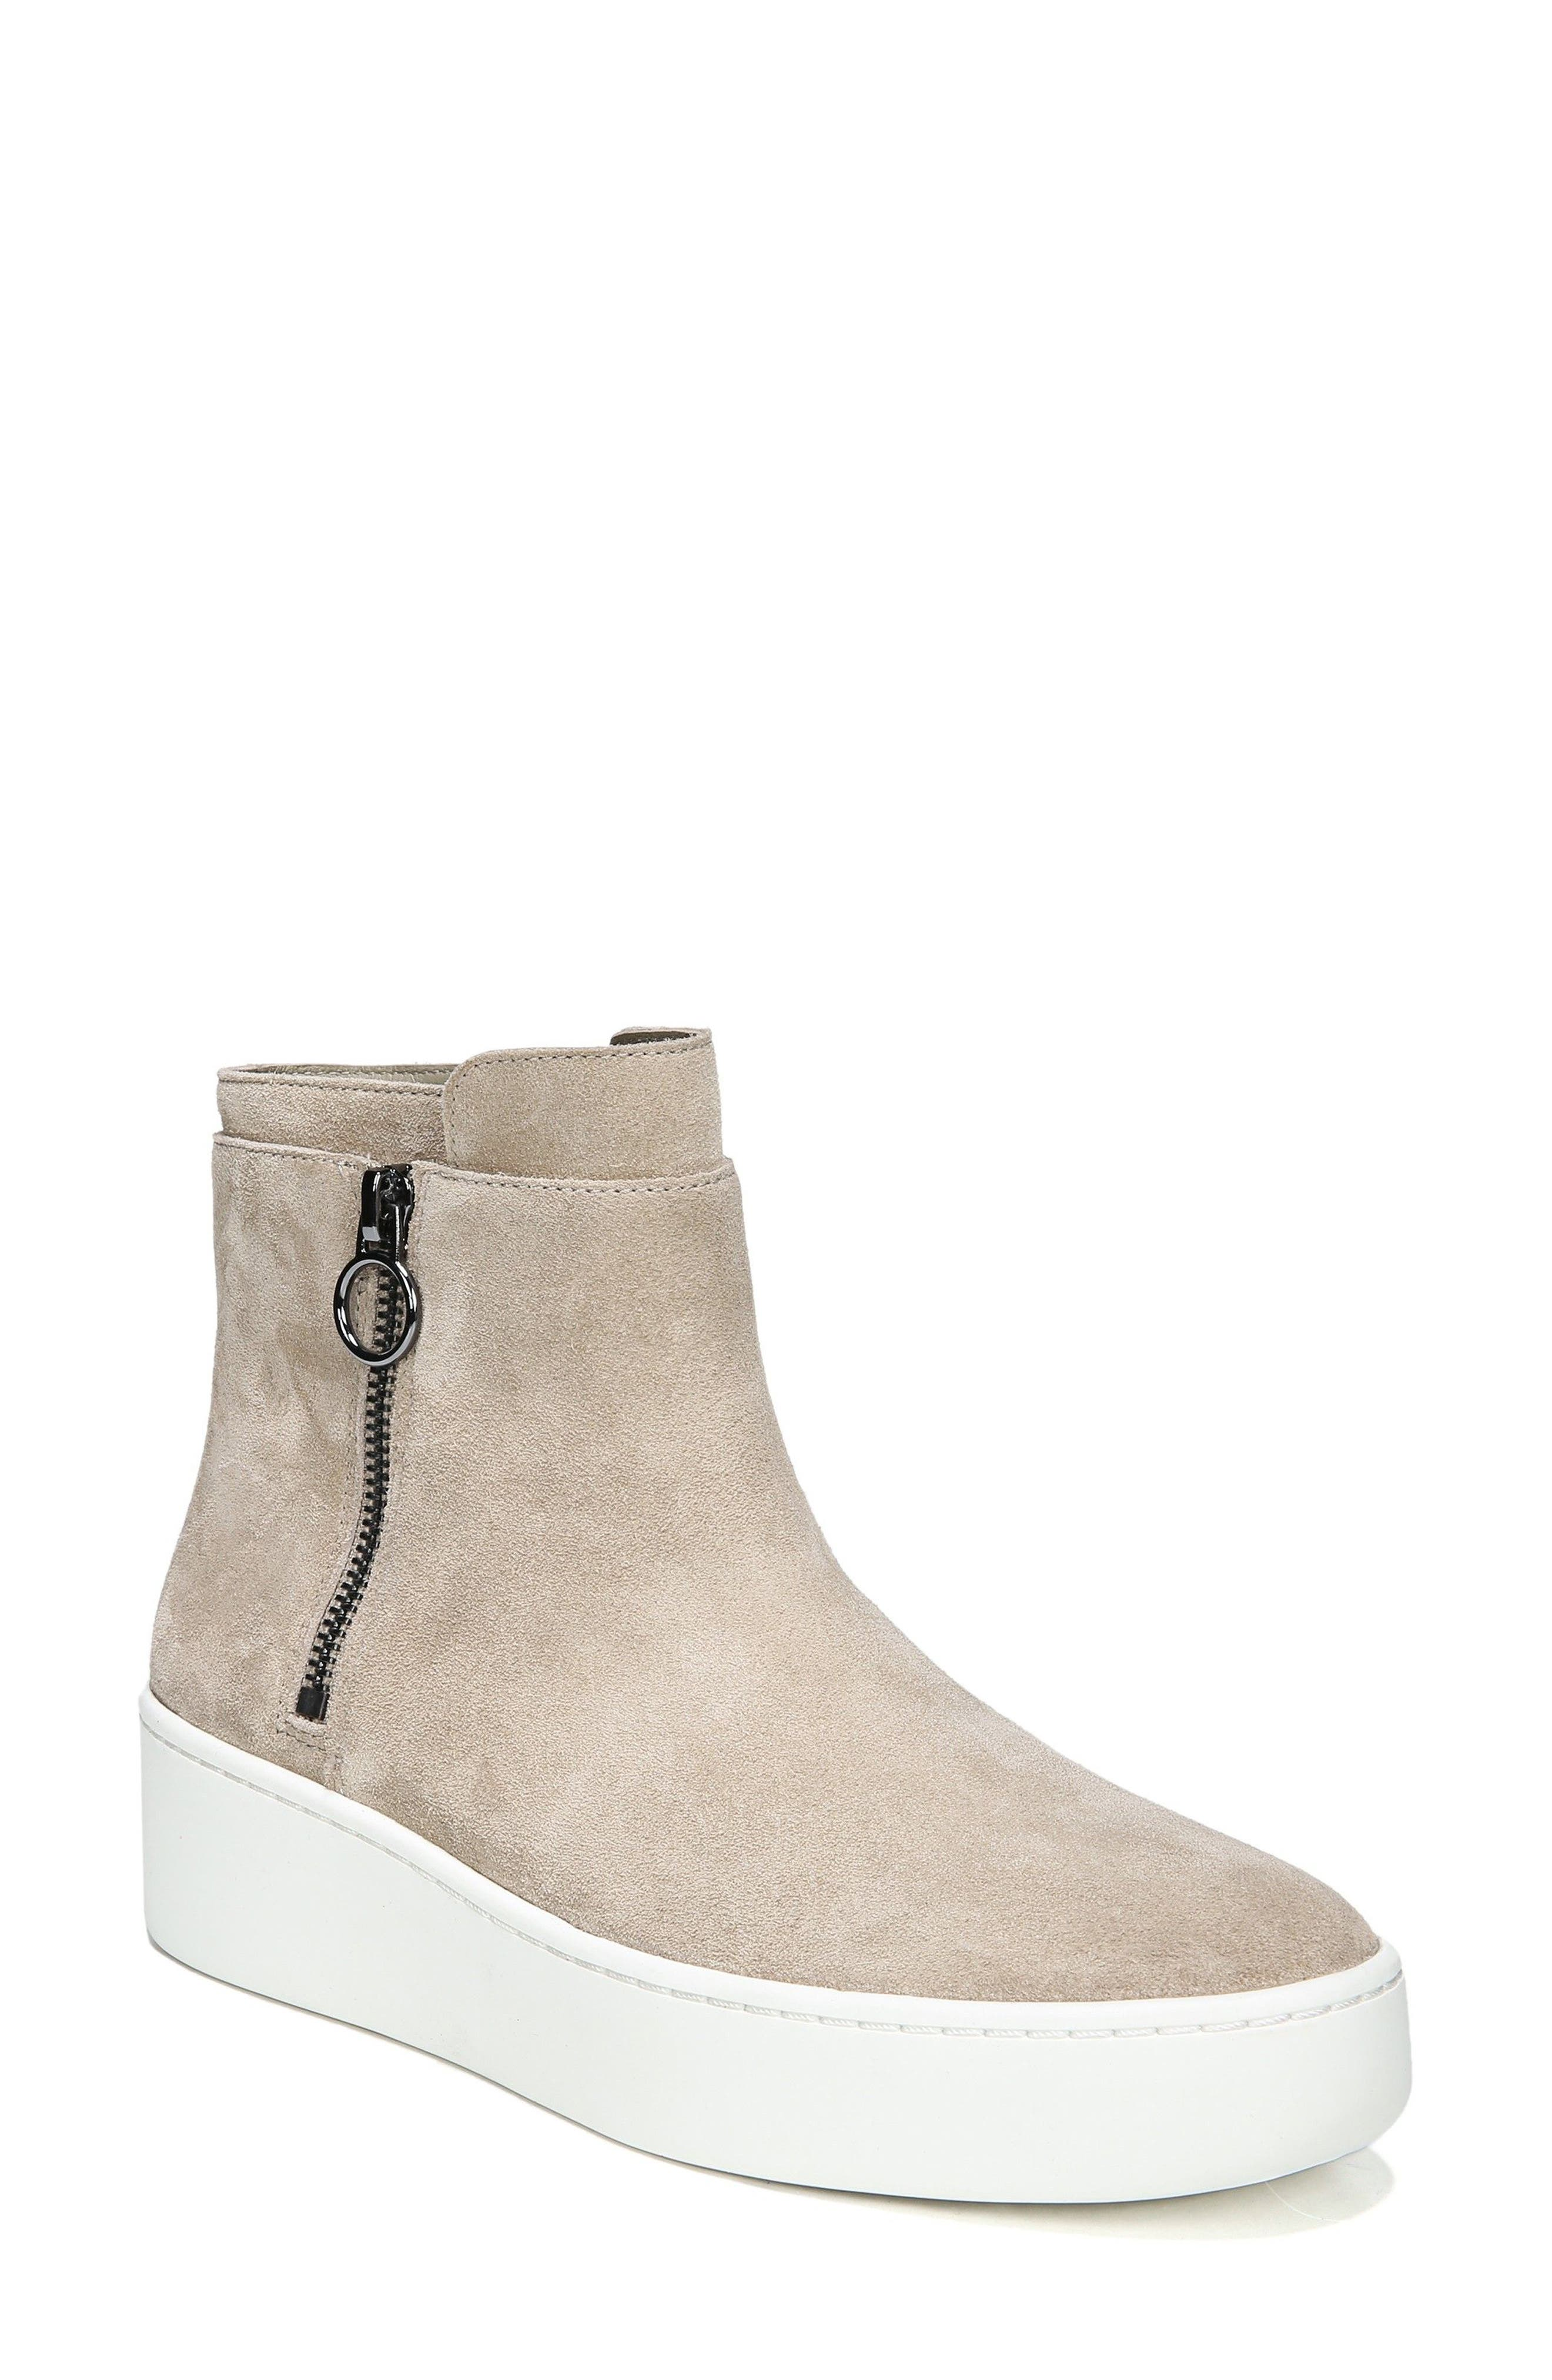 Main Image - Via Spiga Easton High Top Sneaker (Women)